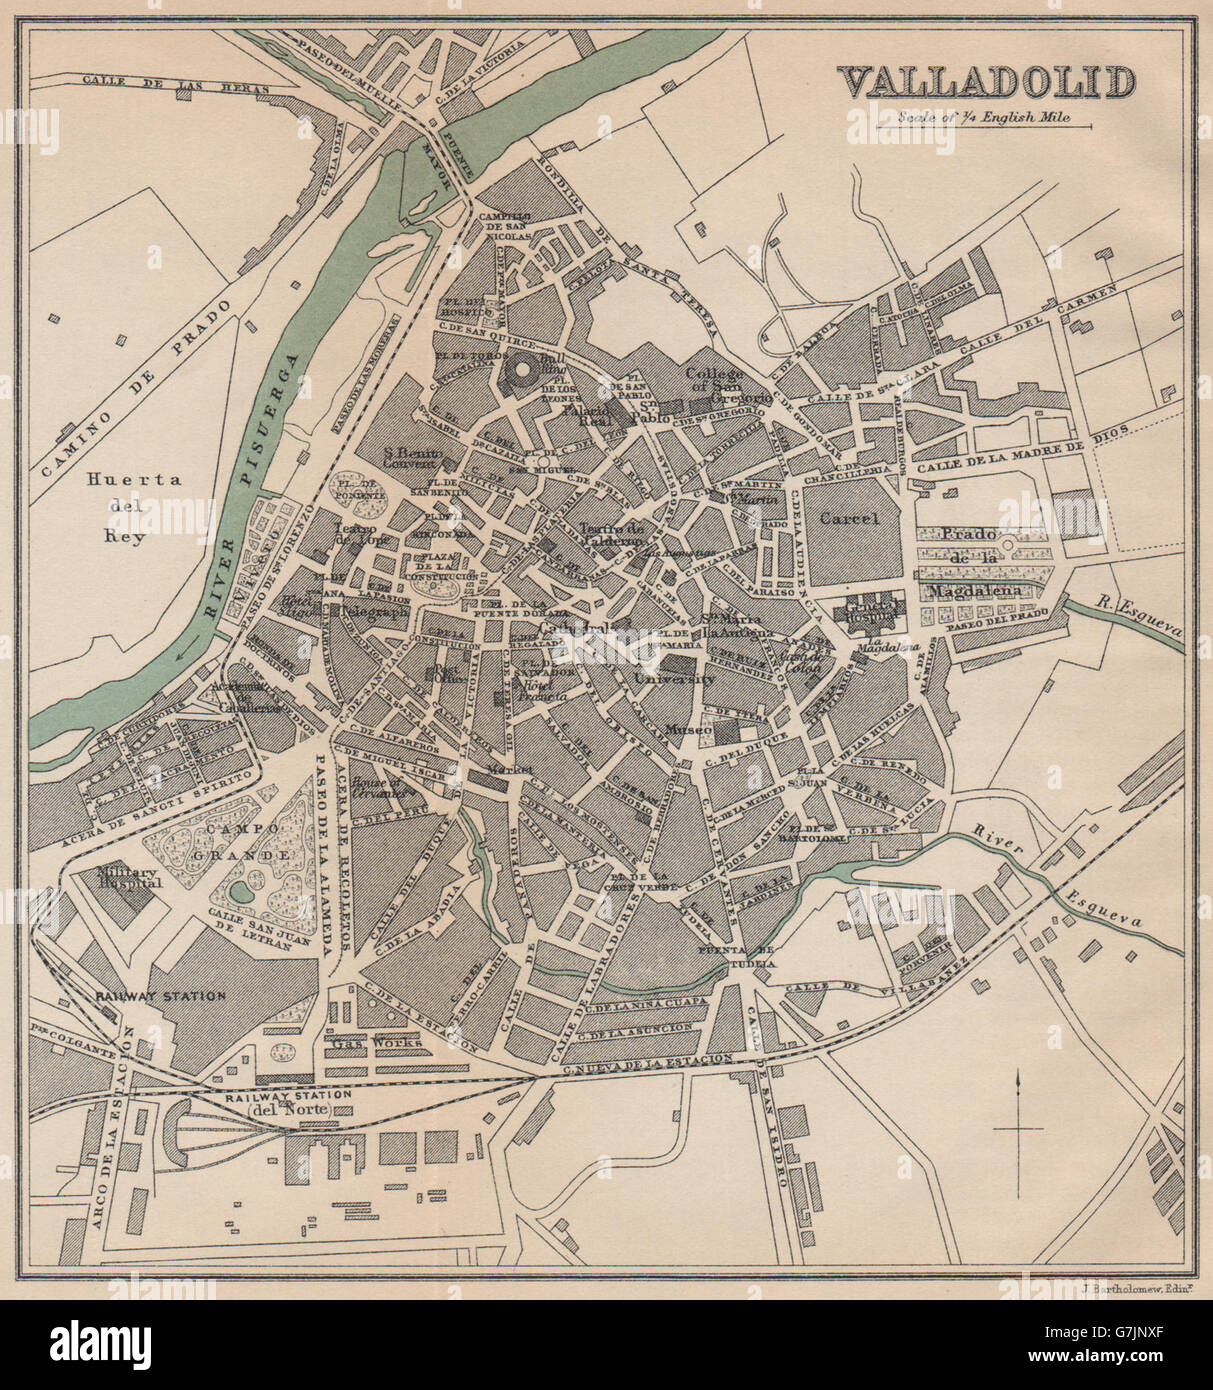 Map Of Spain Valladolid.Valladolid Vintage Town City Map Plan Spain 1899 Stock Photo